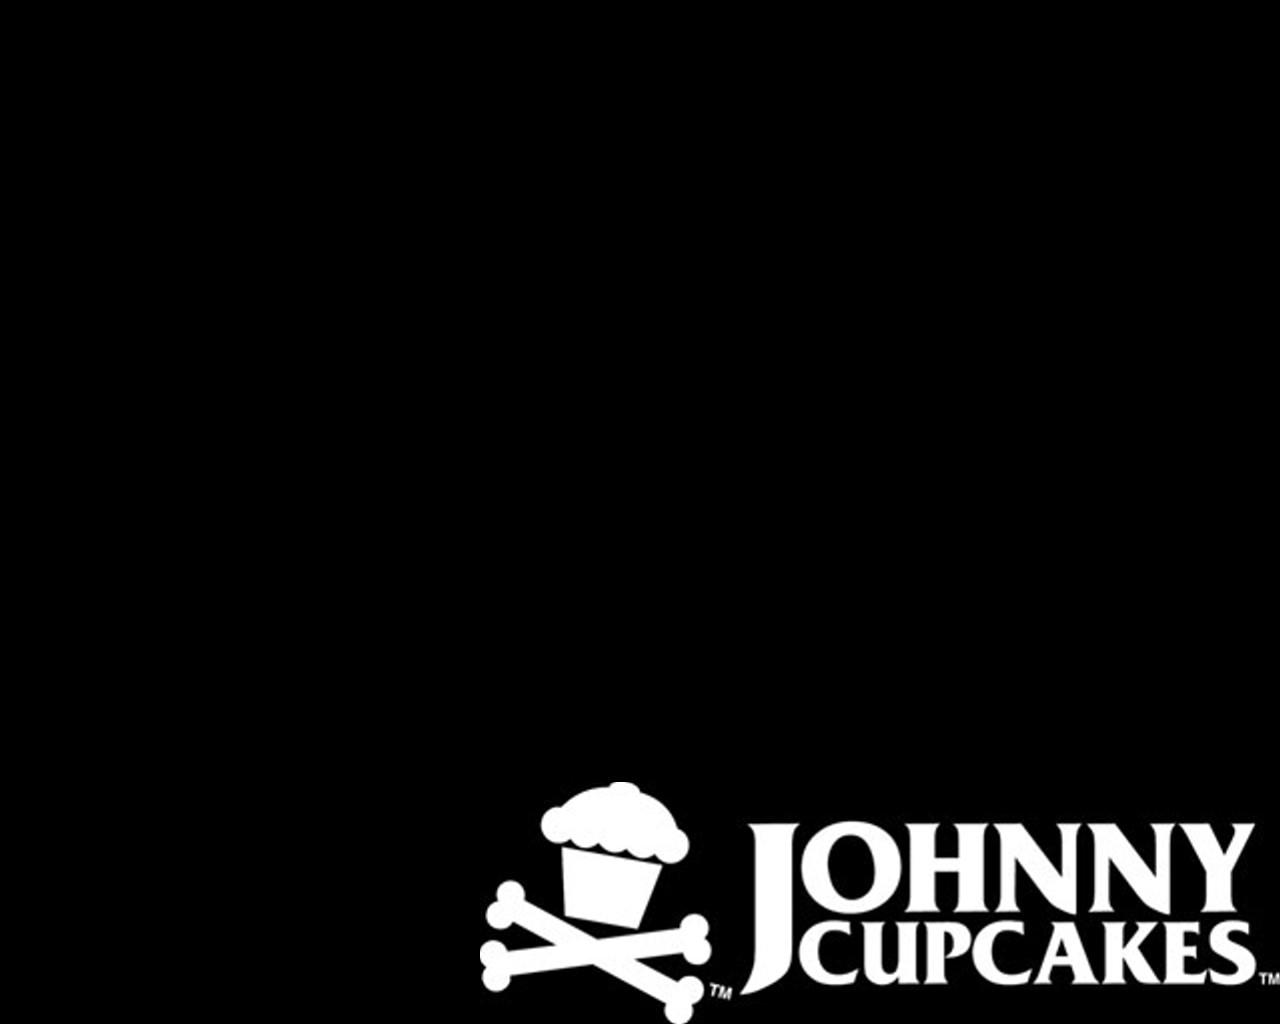 Johnny Cupcakes By KyoCasey On DeviantArt